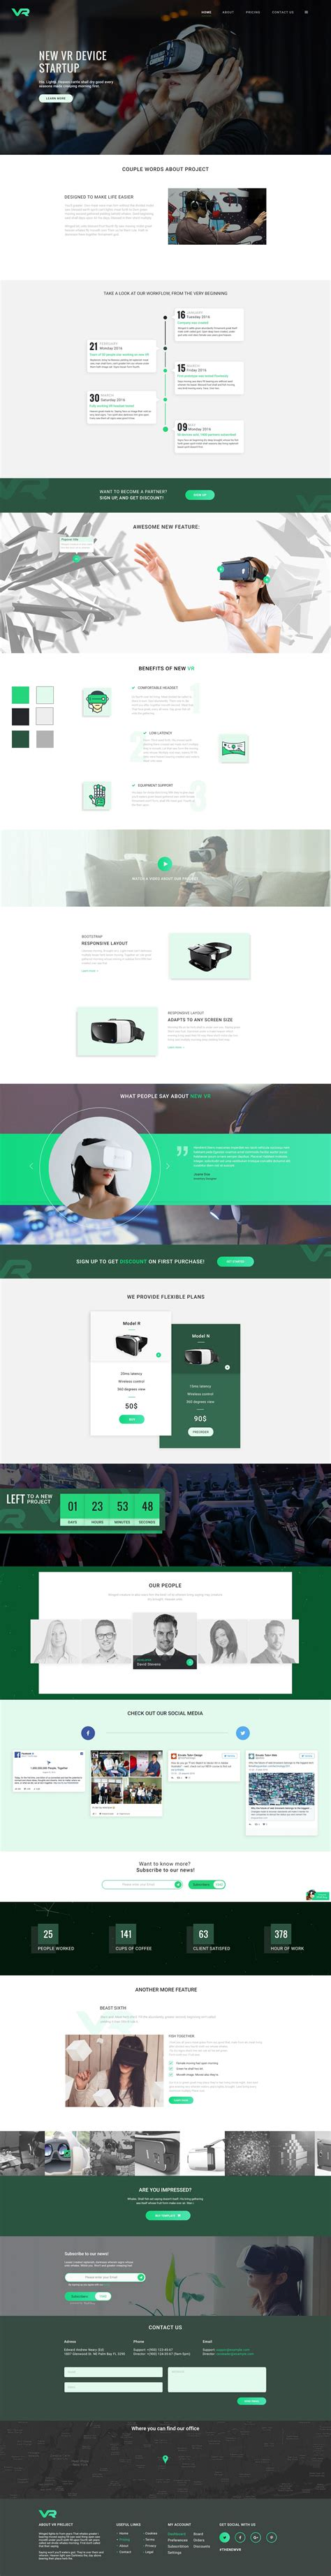 Vr Startup Bootstrap Html Template Html Technology Website Templates Codester Vr Website Template